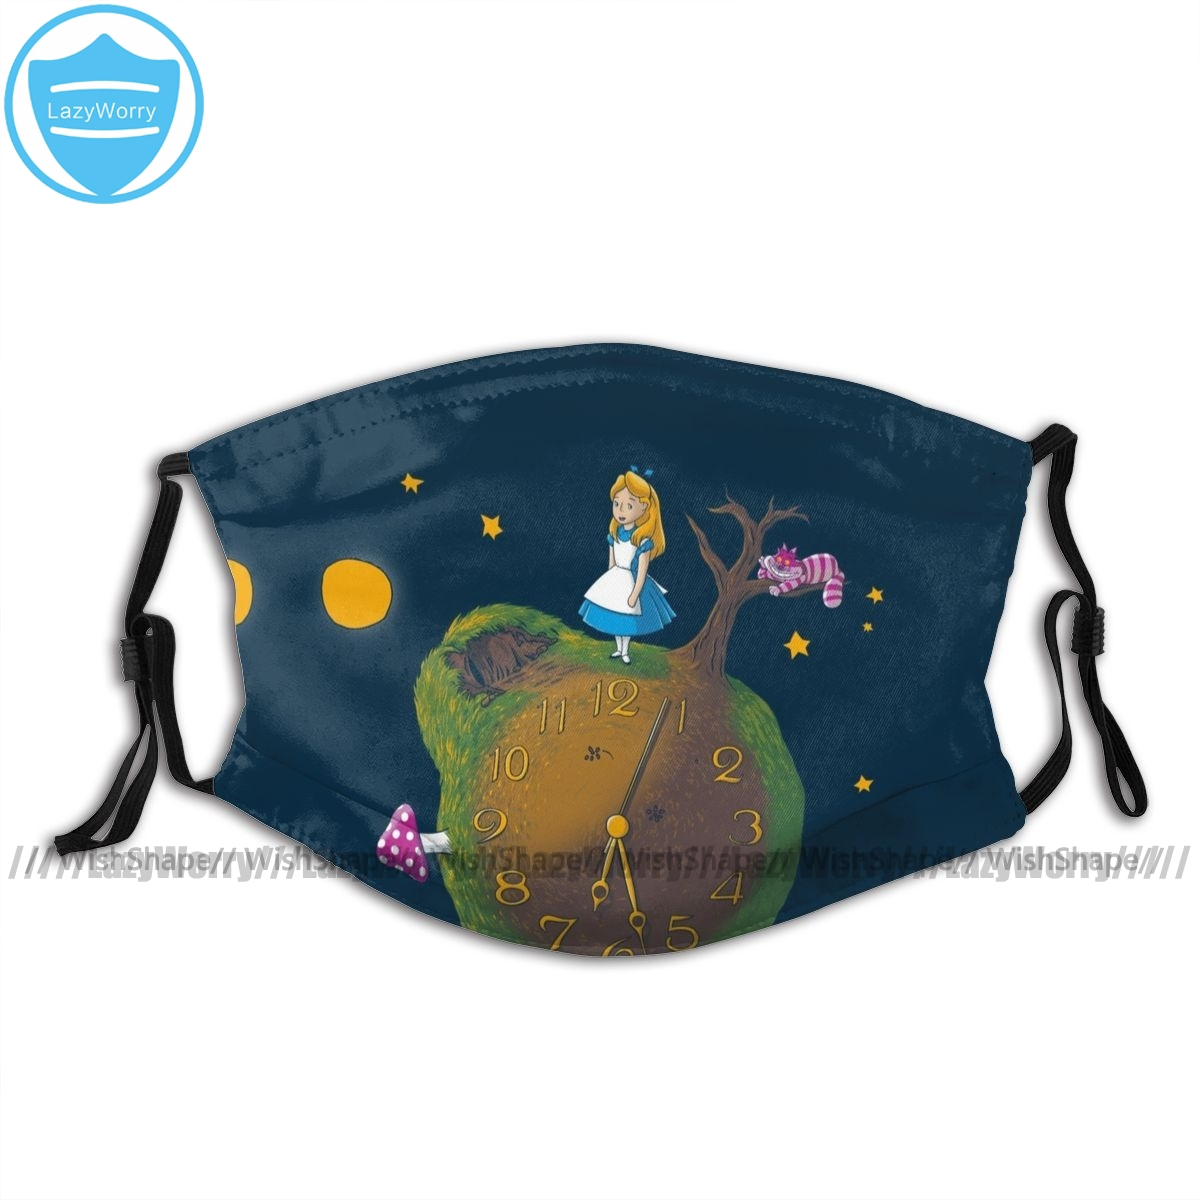 The Little Prince Mouth Face Mask The Little Alice Facial Mask Cool Fashion With 2 Filters For Adult